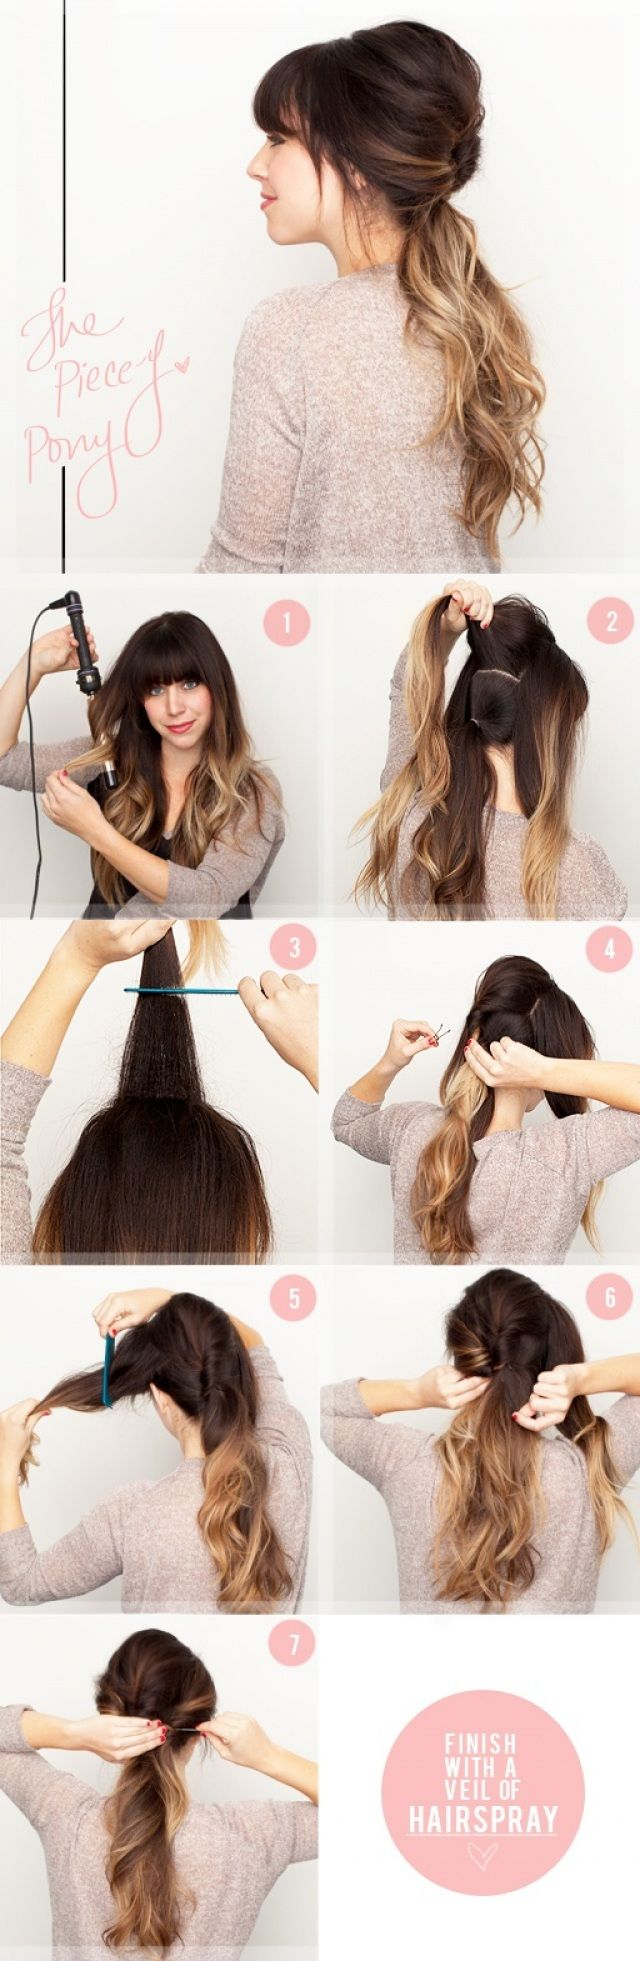 different hair pony style 15 different ways to make ponytails hair 5225